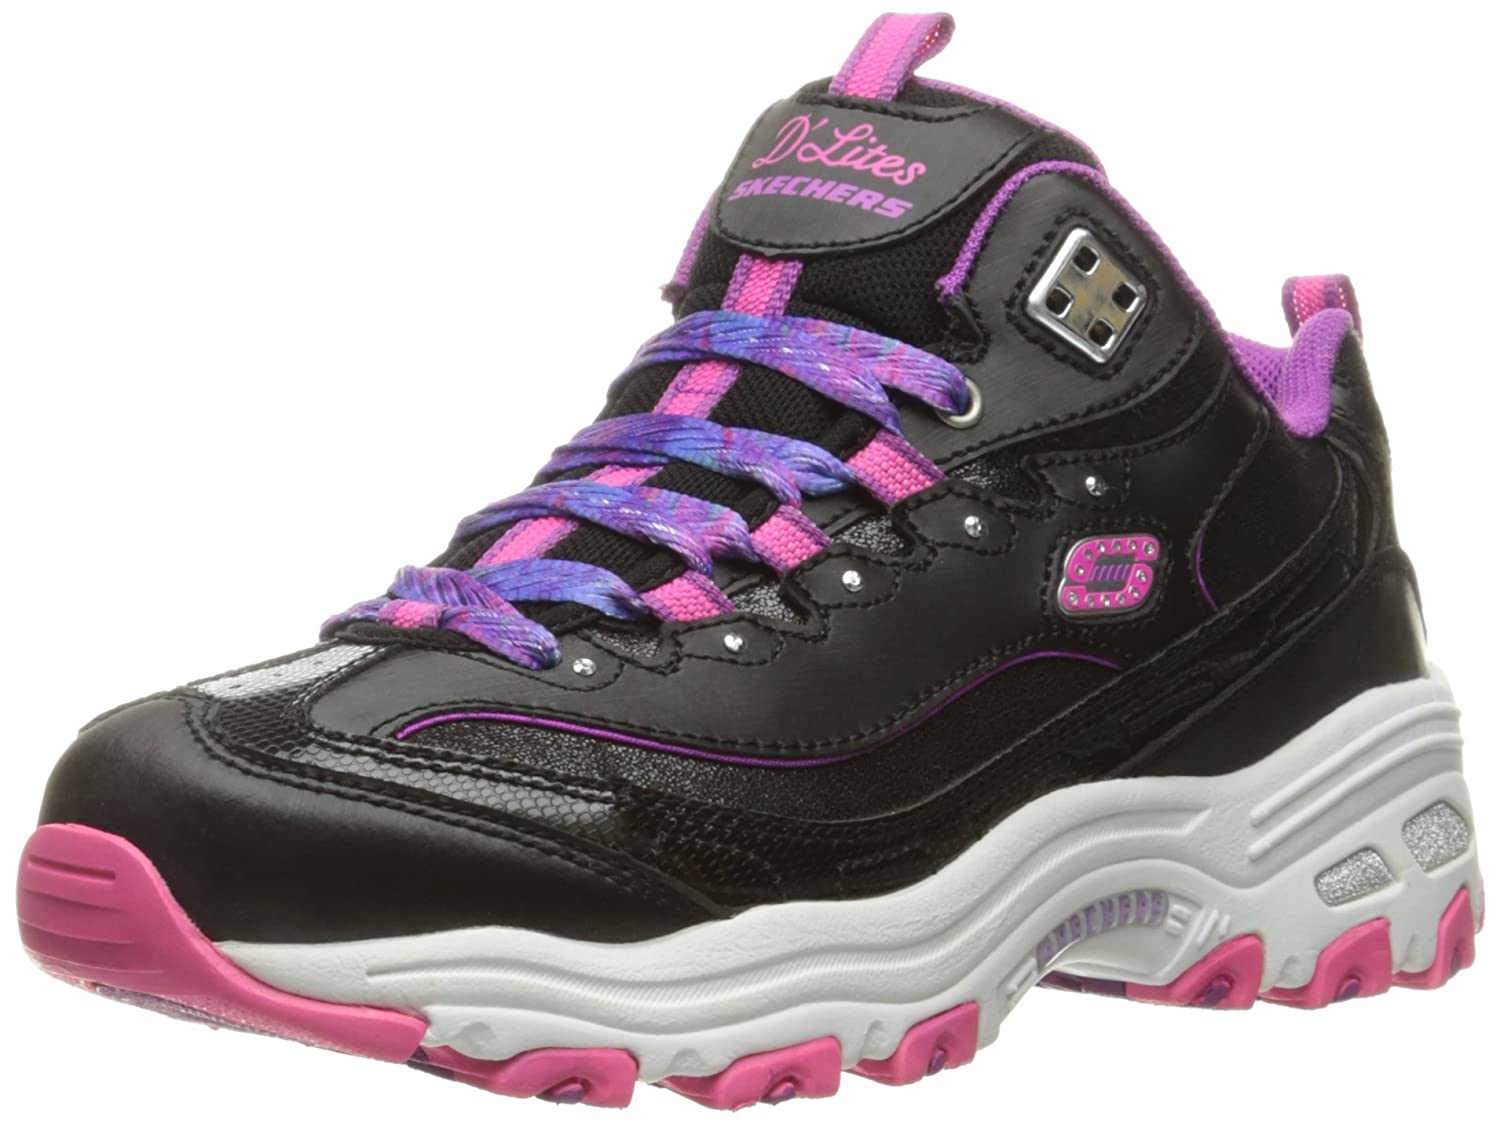 Skechers Kids Girls' D'Lites-Wild Bling Sneaker, Black/Pink/Purple, 12 M US Little Kid